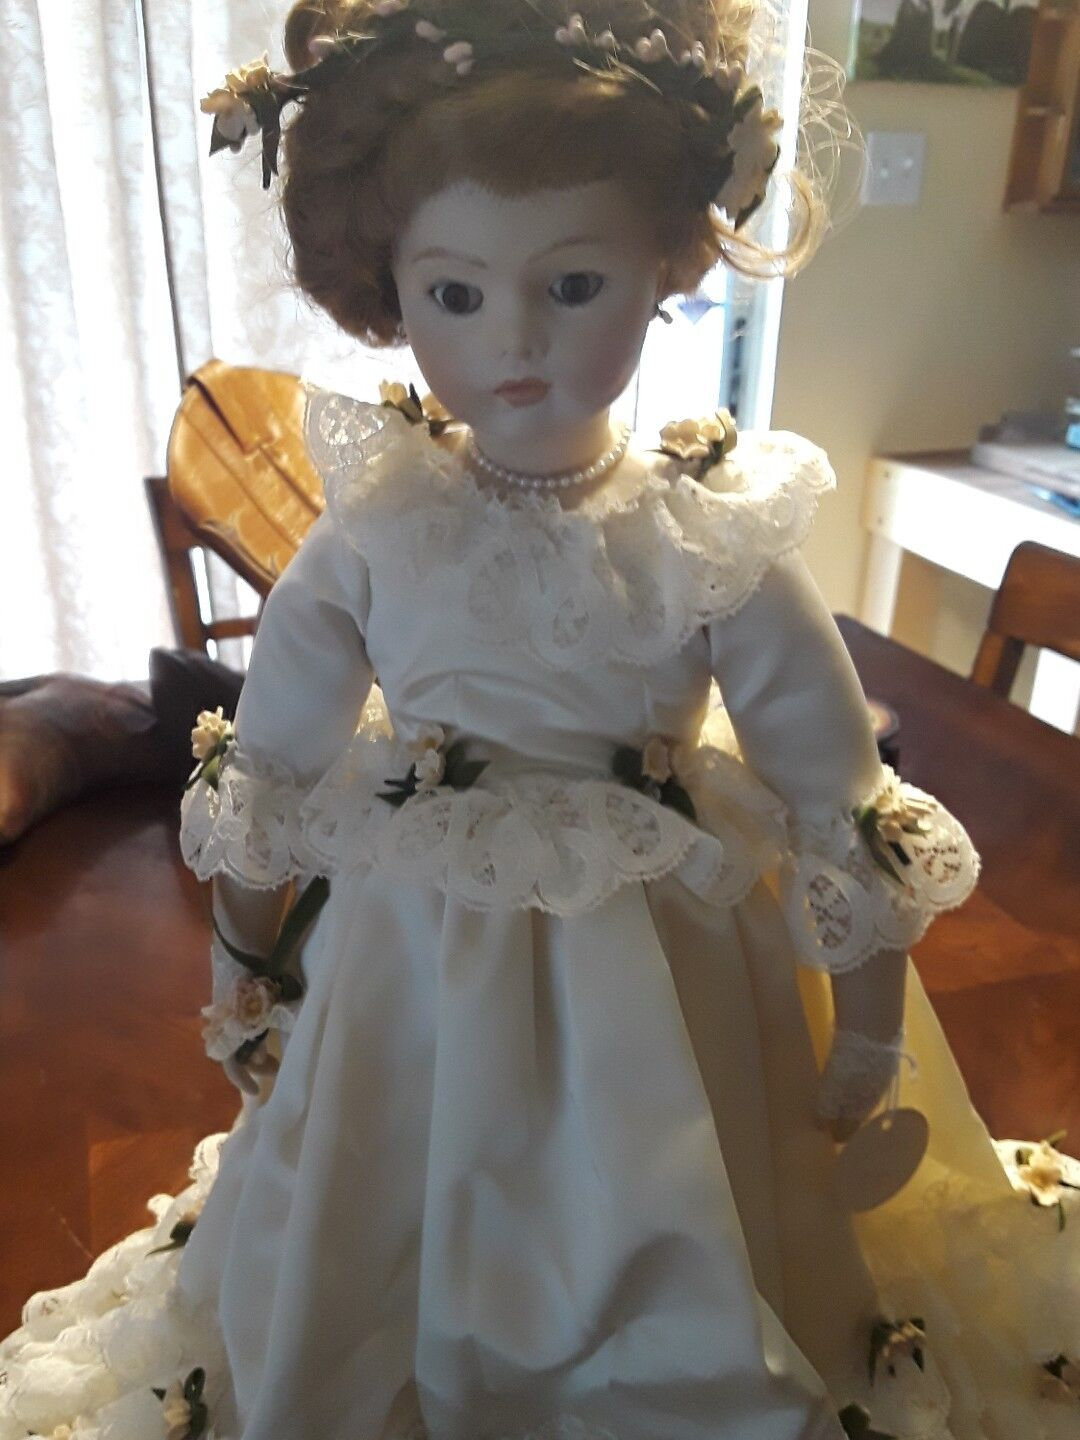 Bru Jne Reproduction Bride Doll Marked Priscilla 75 Rare Porcelain